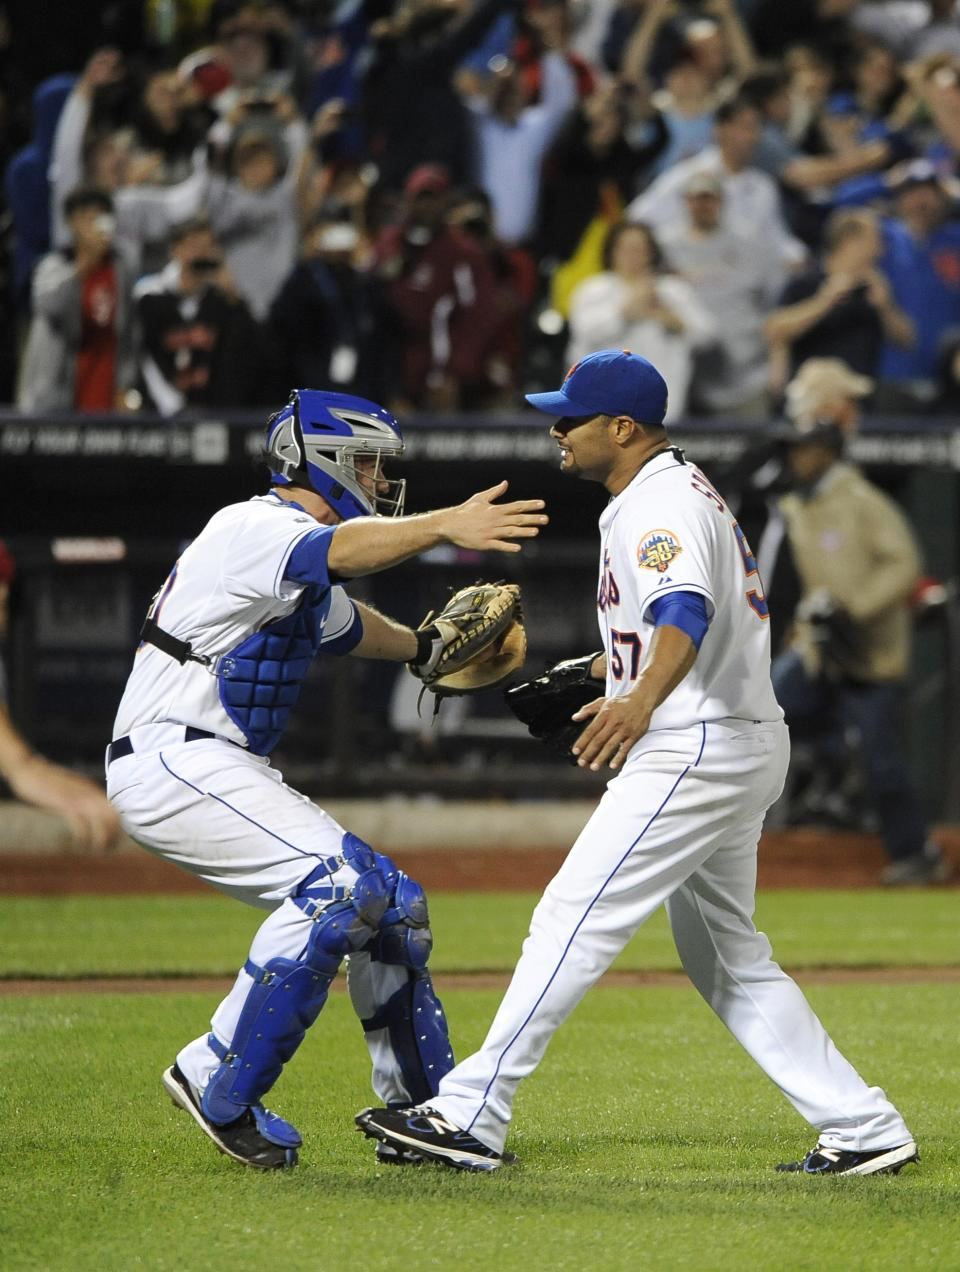 New York Mets catcher Josh Thole, left, runs to hug starting pitcher Johan Santana who threw a no-hitter against the St. Louis Cardinals in a baseball game on Friday, June 1, 2012, at Citi Field in New York. (AP Photo/Kathy Kmonicek)